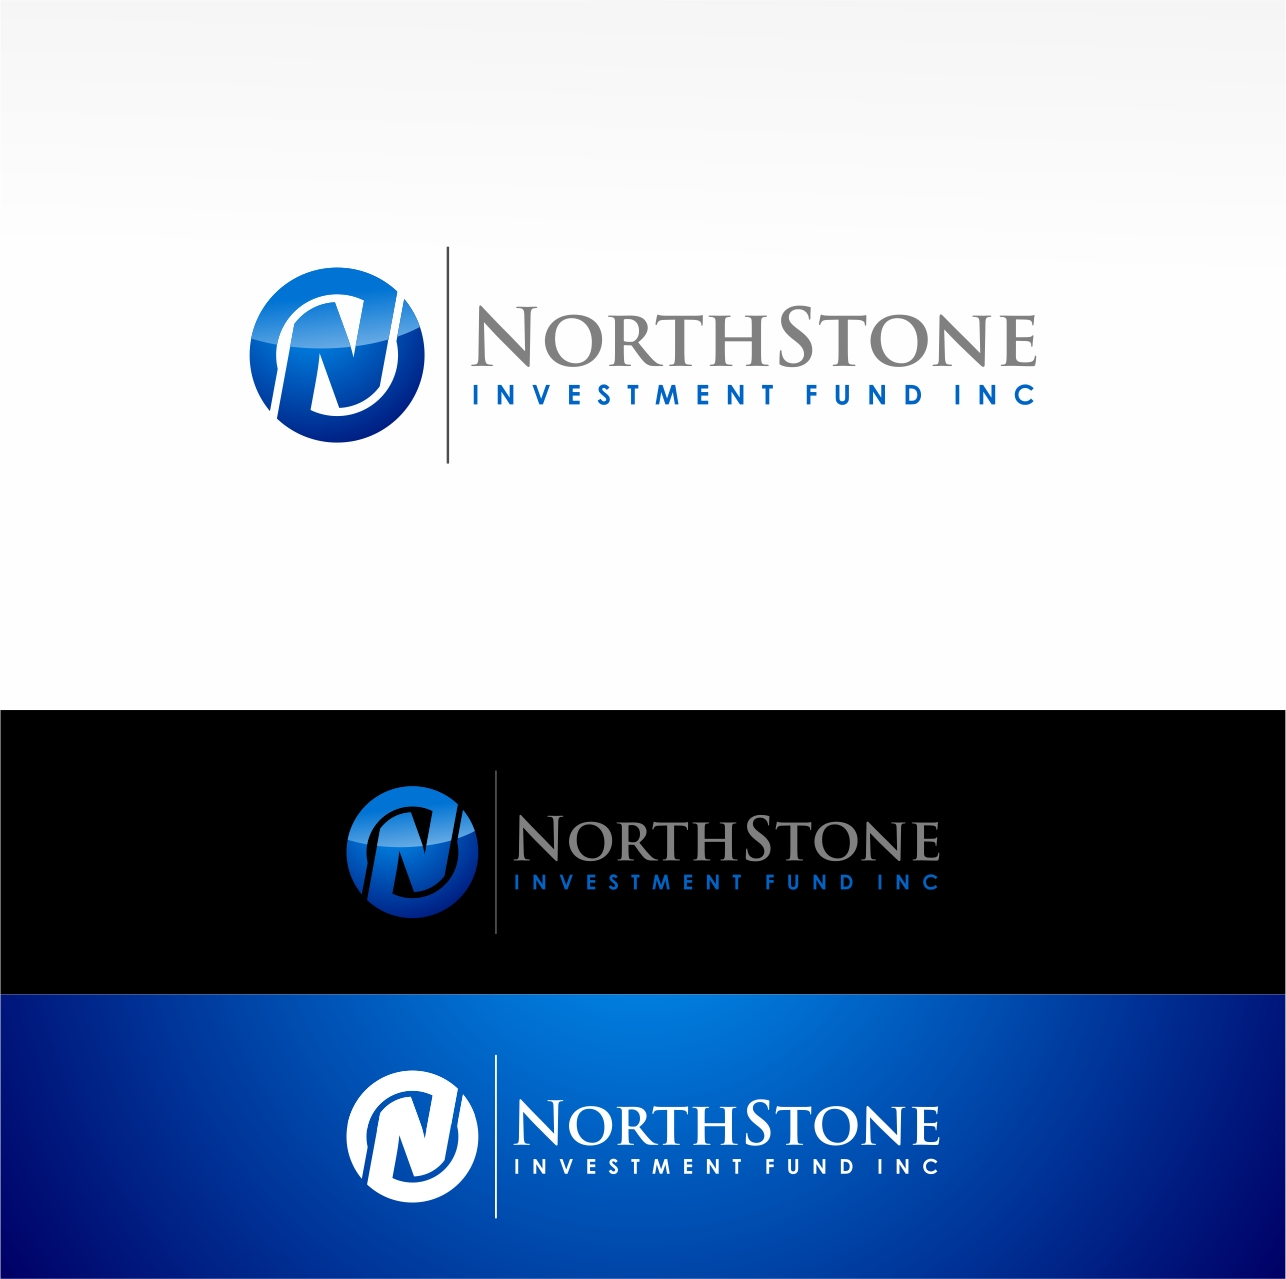 Logo Design by haidu - Entry No. 15 in the Logo Design Contest Unique Logo Design Wanted for NorthStone Investment Fund Inc.